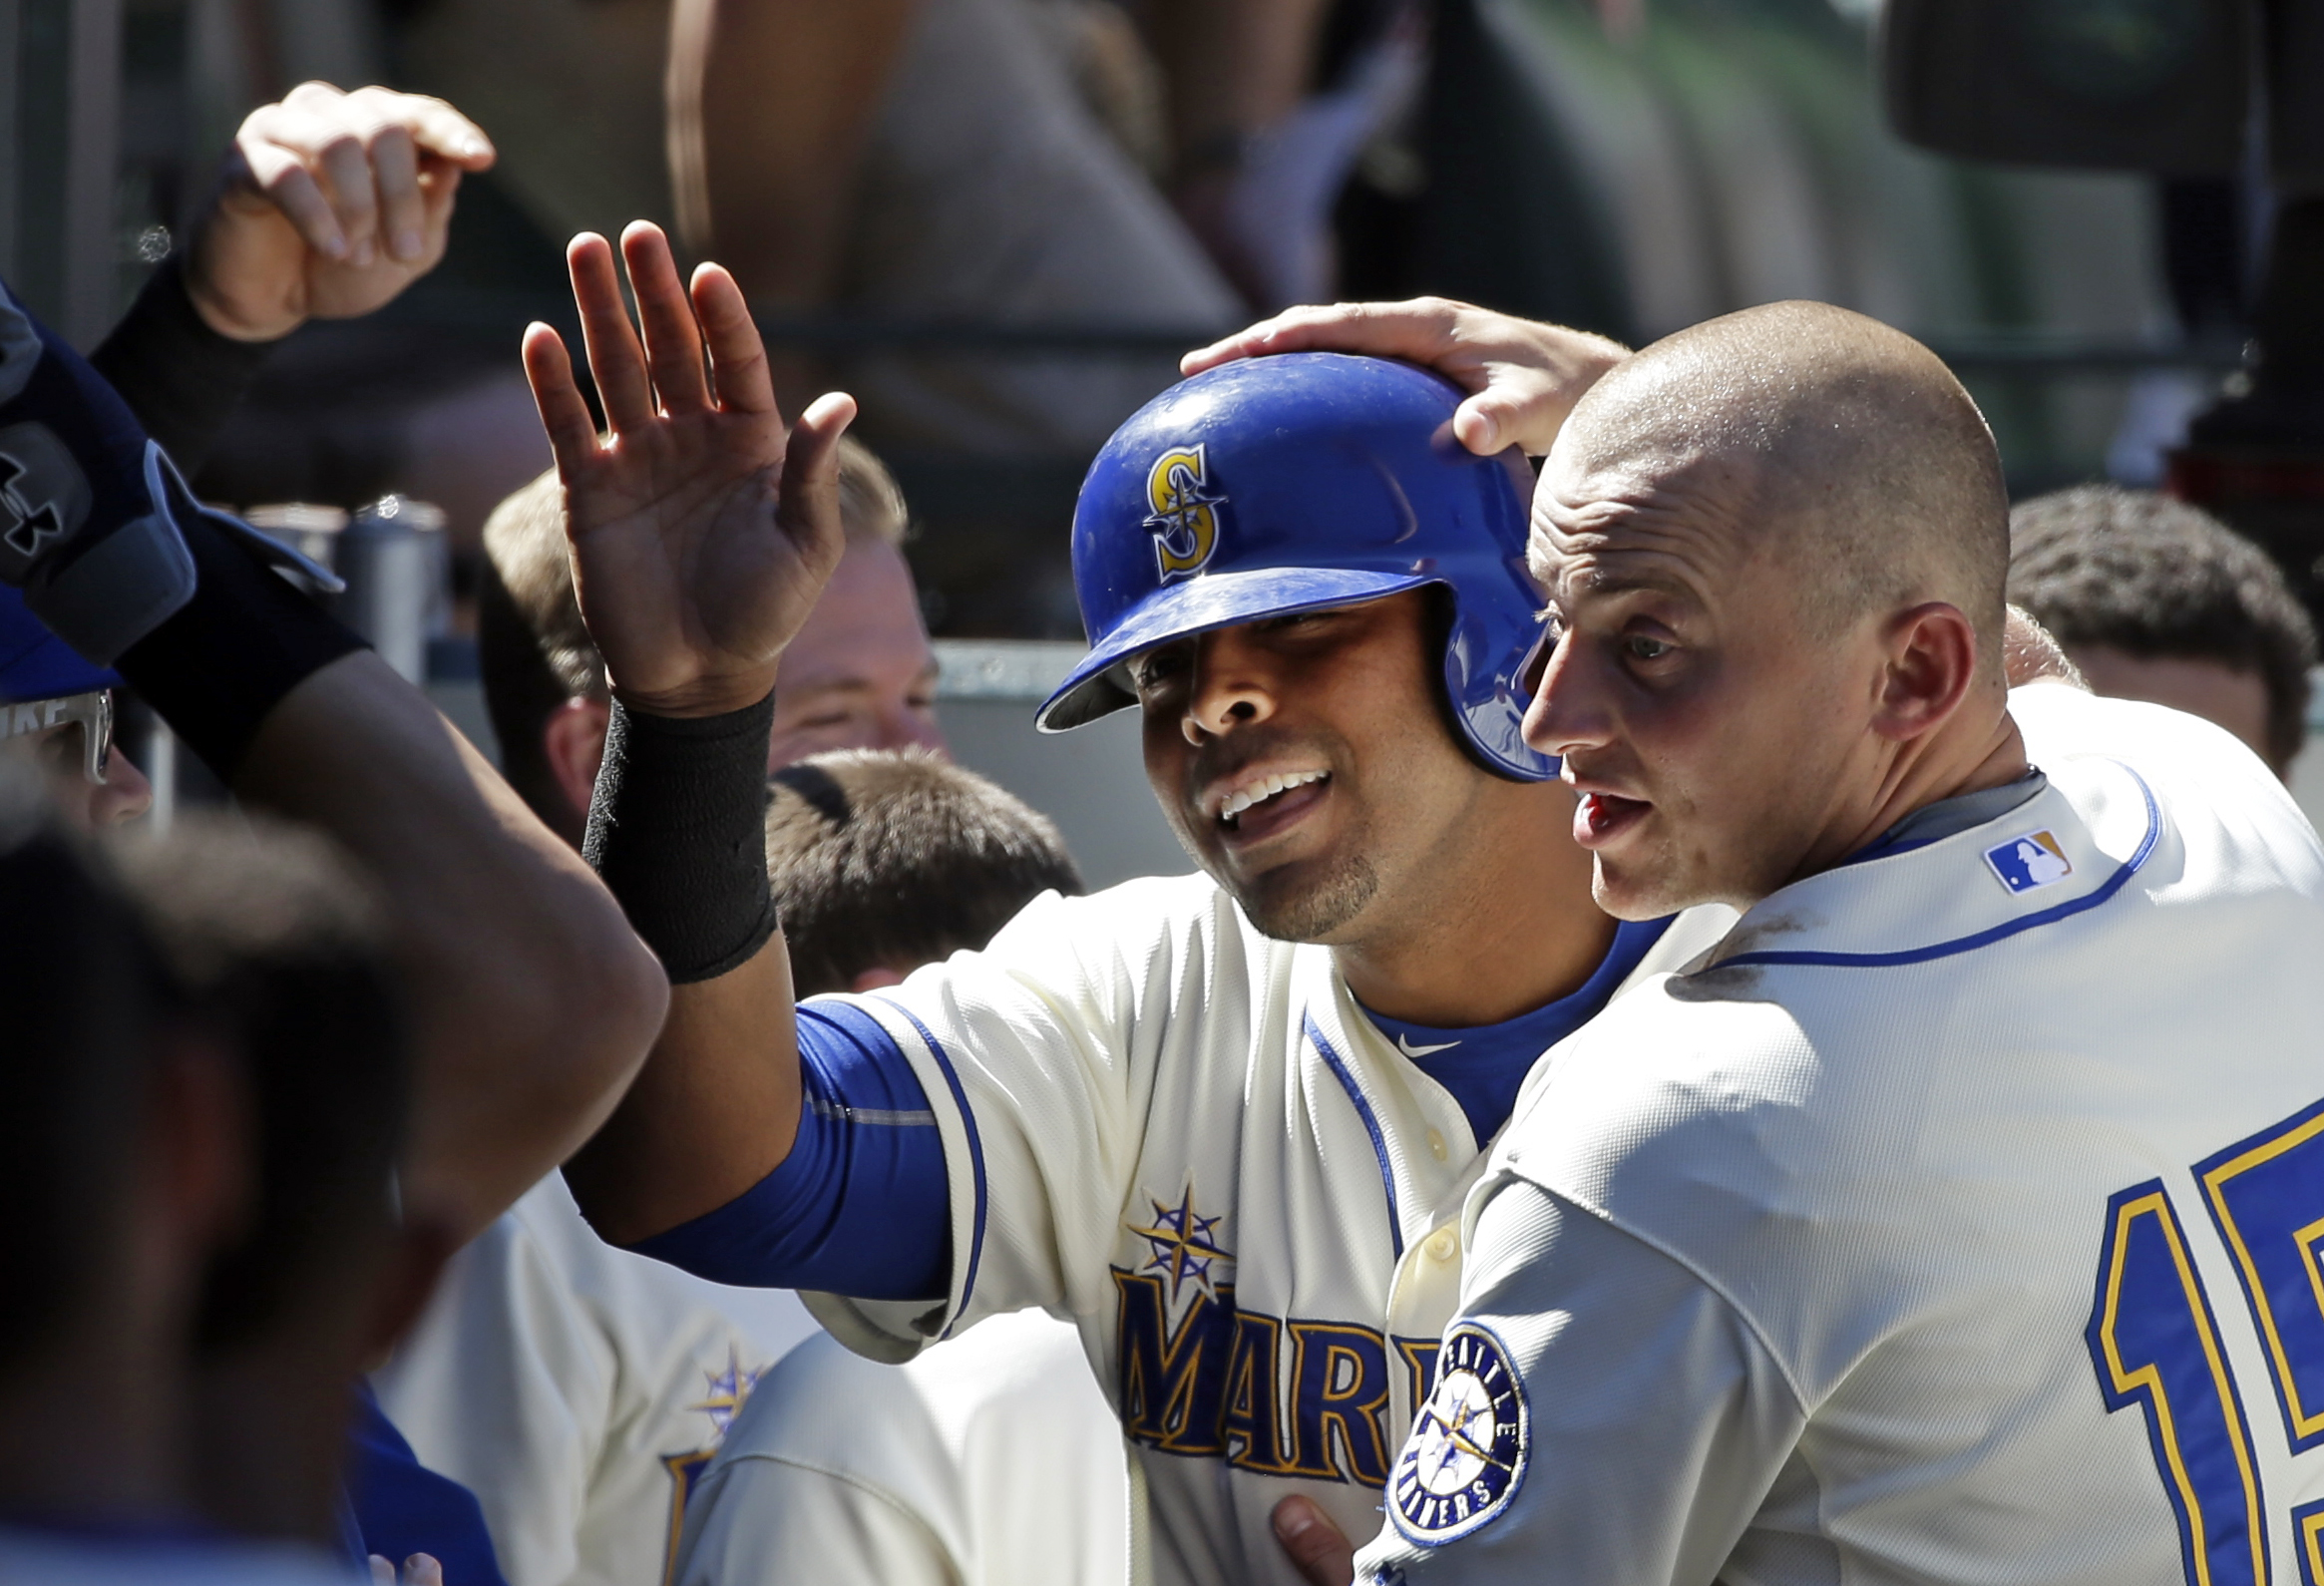 Seattle Mariners' Nelson Cruz, center, is congratulated after his home run by Kyle Seager (15) and teammates against the Texas Rangers in the sixth inning of a baseball game Sunday, Aug. 9, 2015, in Seattle. The Mariners won 4-2. (AP Photo/Elaine Thompson